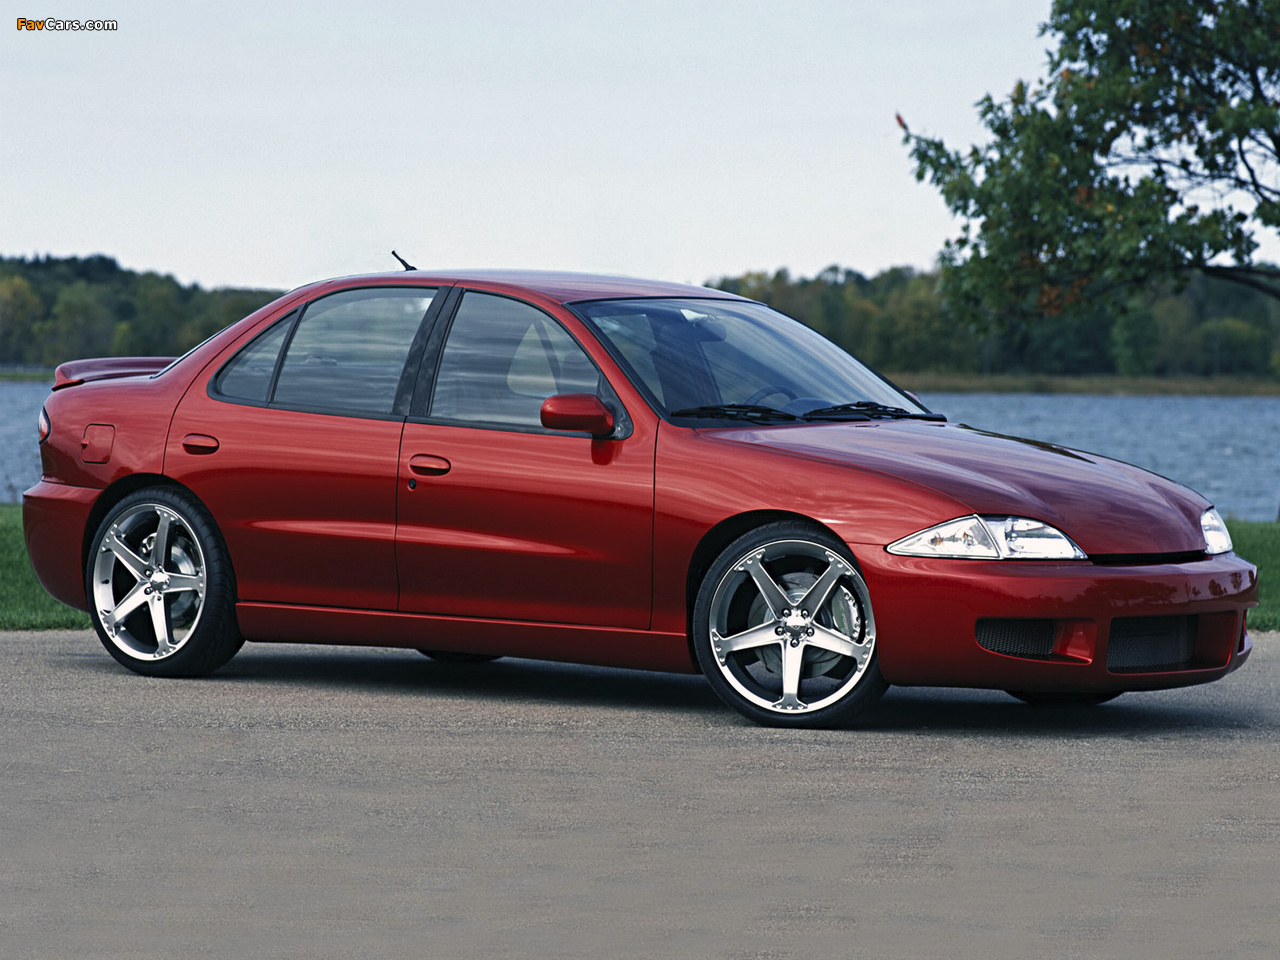 Wallpapers of Chevrolet Cavalier Z24 Supercharged Concept ...